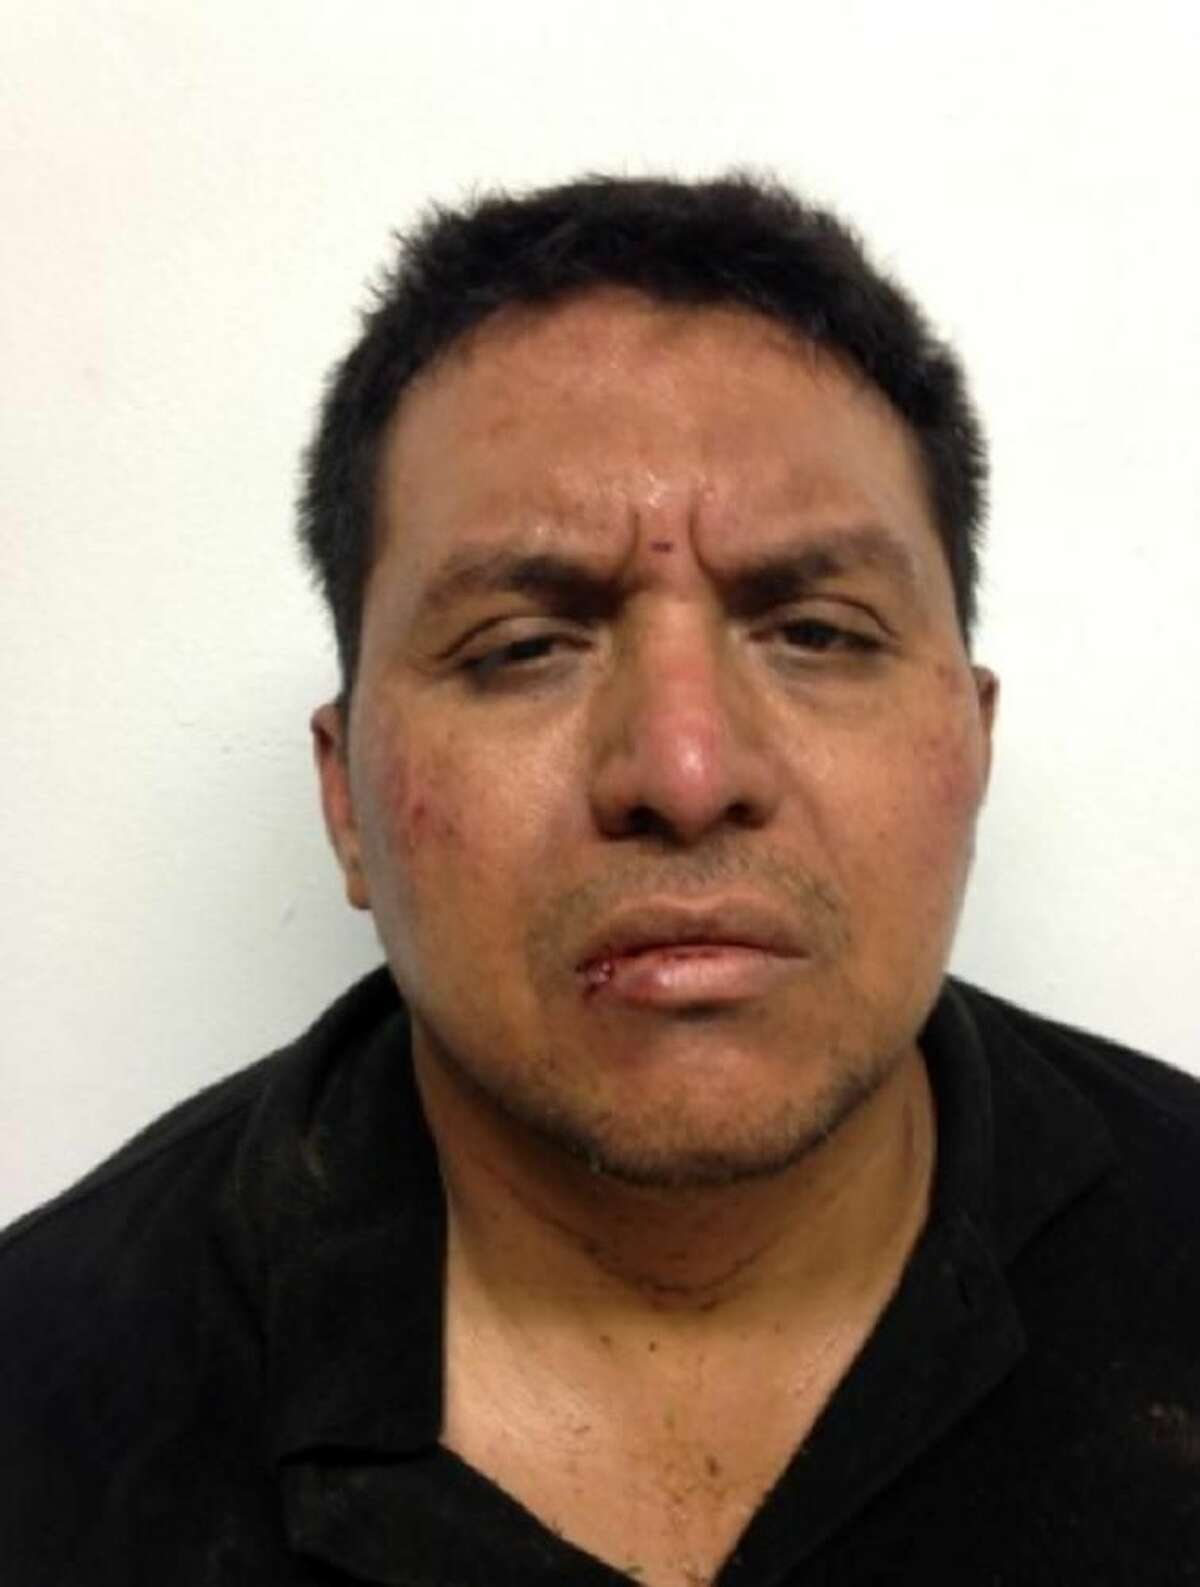 This mug shot released by Mexico's Interior Ministry on Monday, July 15, 2013, shows Zetas drug cartel leader Miguel Angel Trevino Morales after his arrest.Click ahead to view 13 things to know about Los Zetas drug cartel.